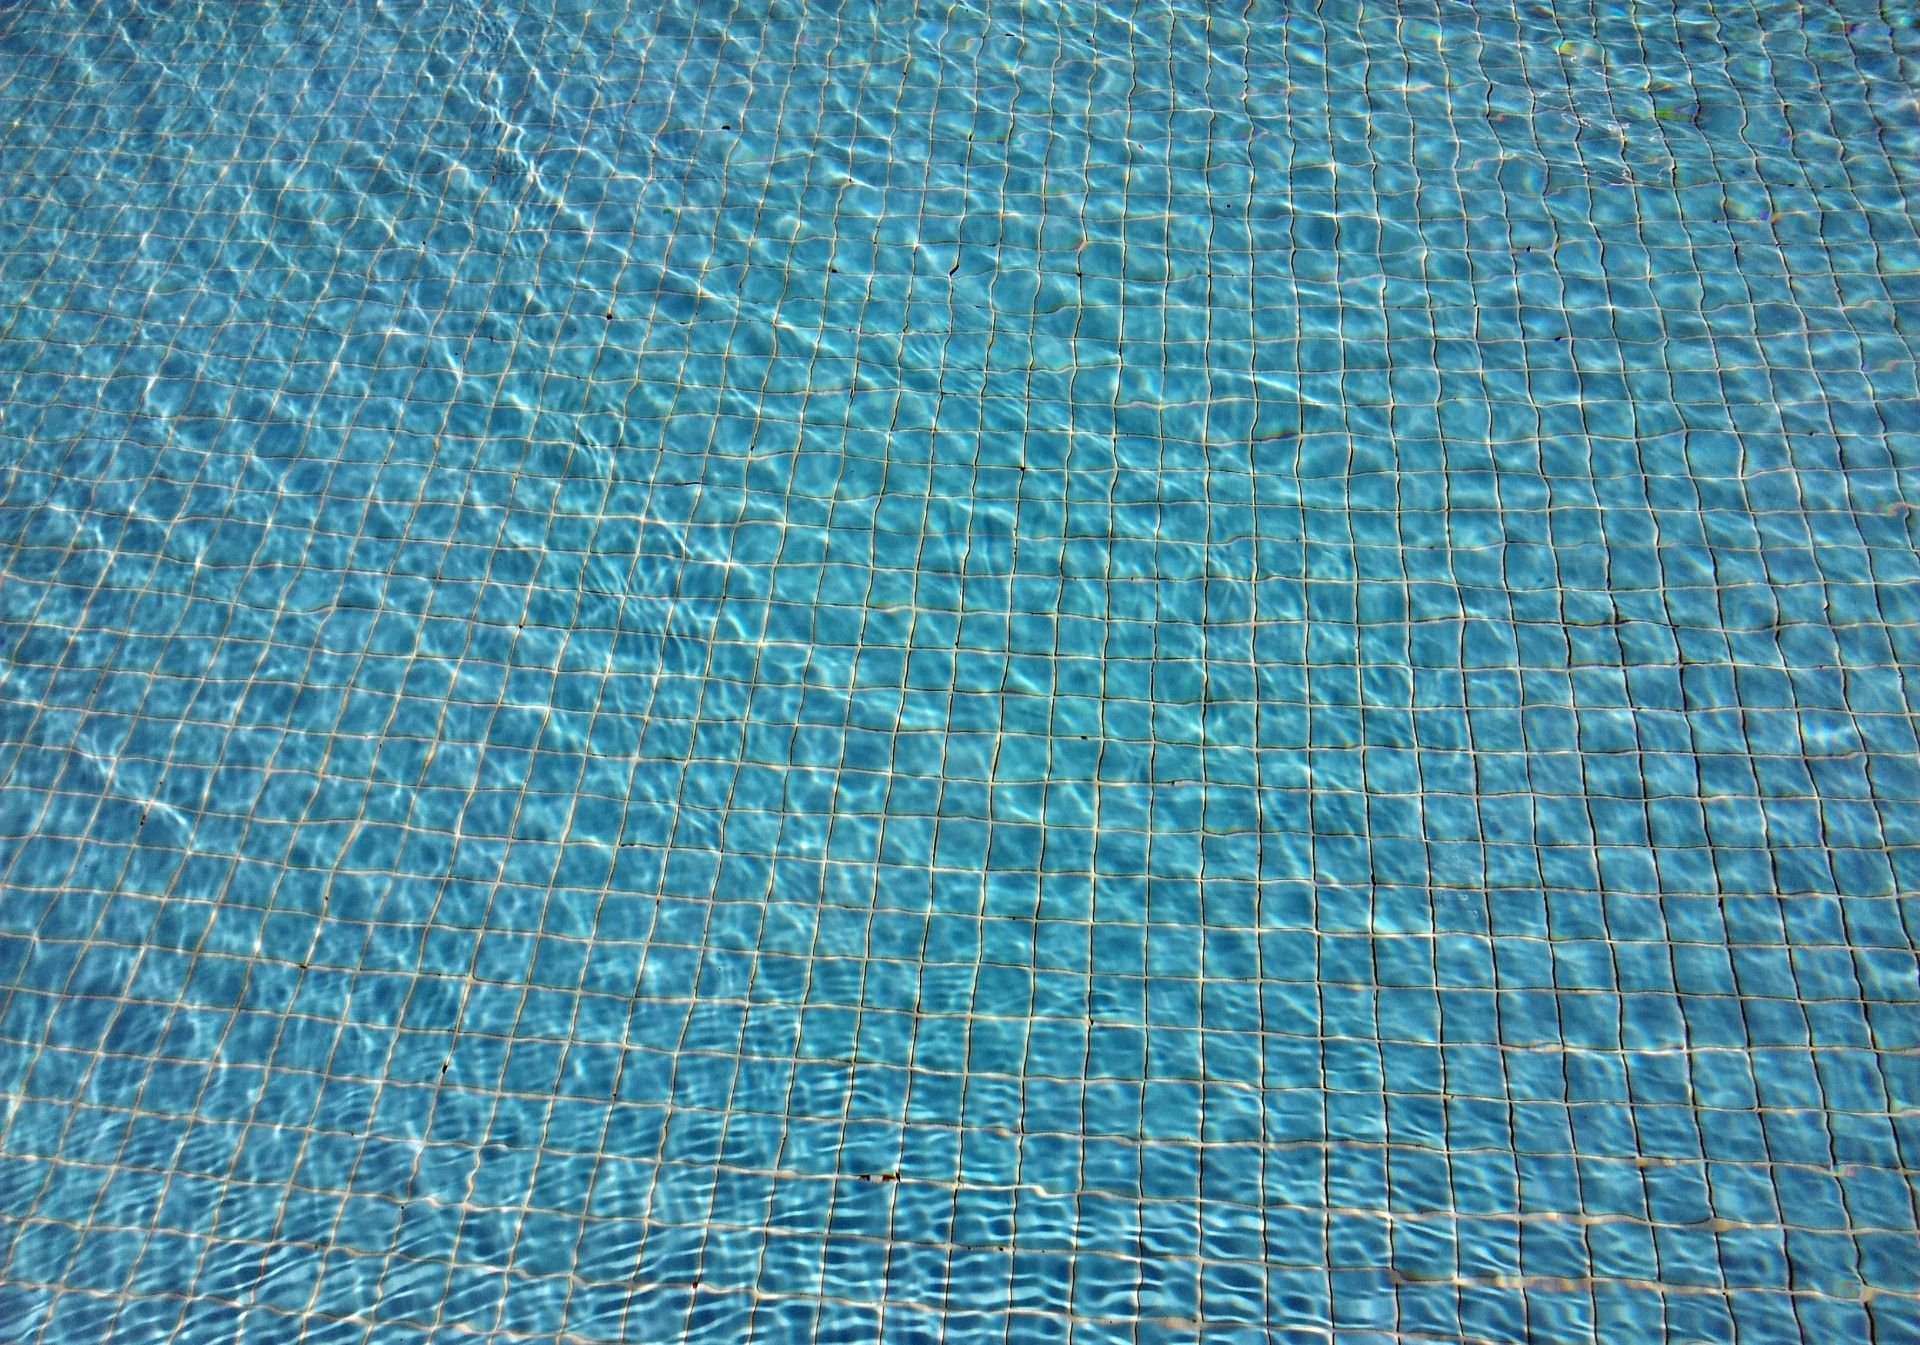 Swimming Pool Water Wave Texture Images High Size Resolution